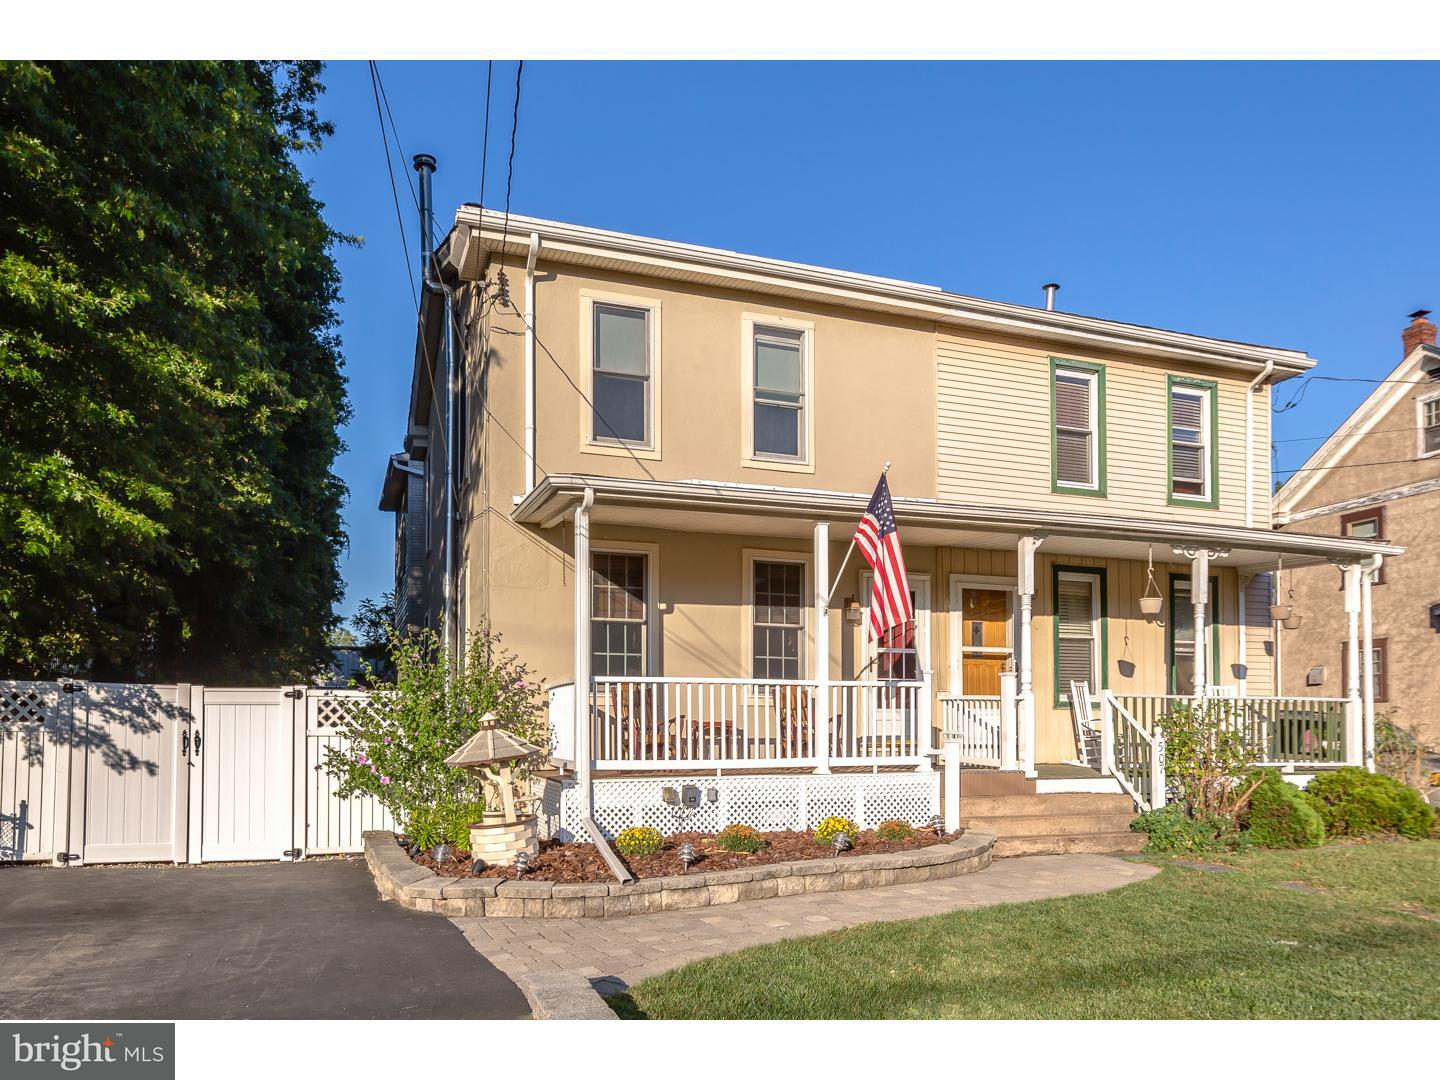 505 MAIN ST, HULMEVILLE - Listed at $265,000, HULMEVILLE